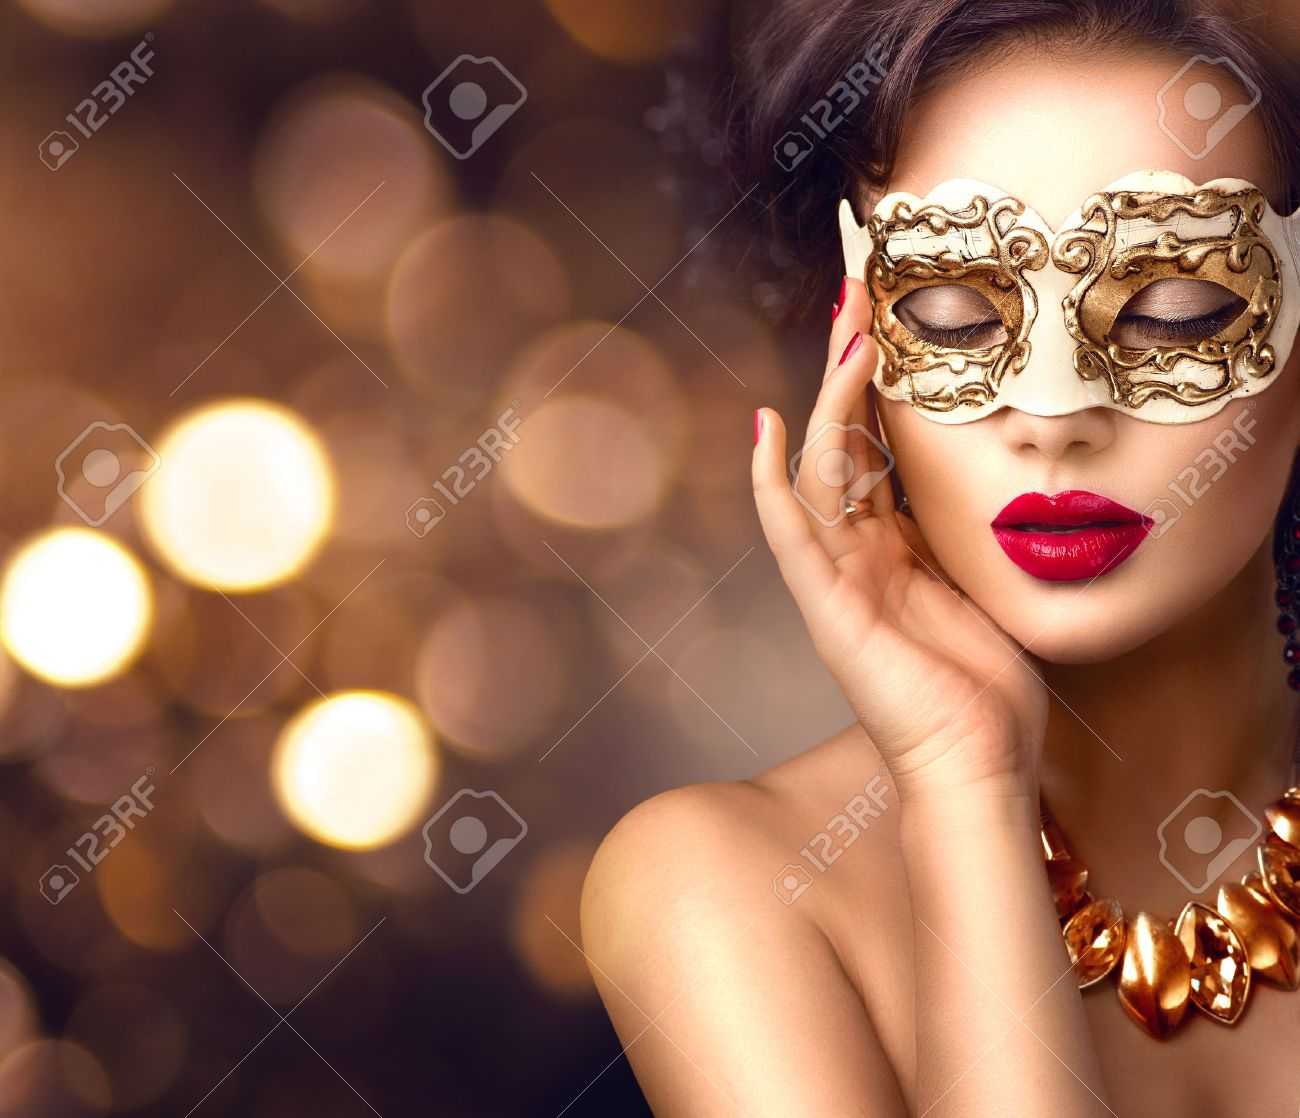 Beauty model woman wearing venetian masquerade carnival mask at party. Christmas and New Year celebration Banque d'images - 66532045